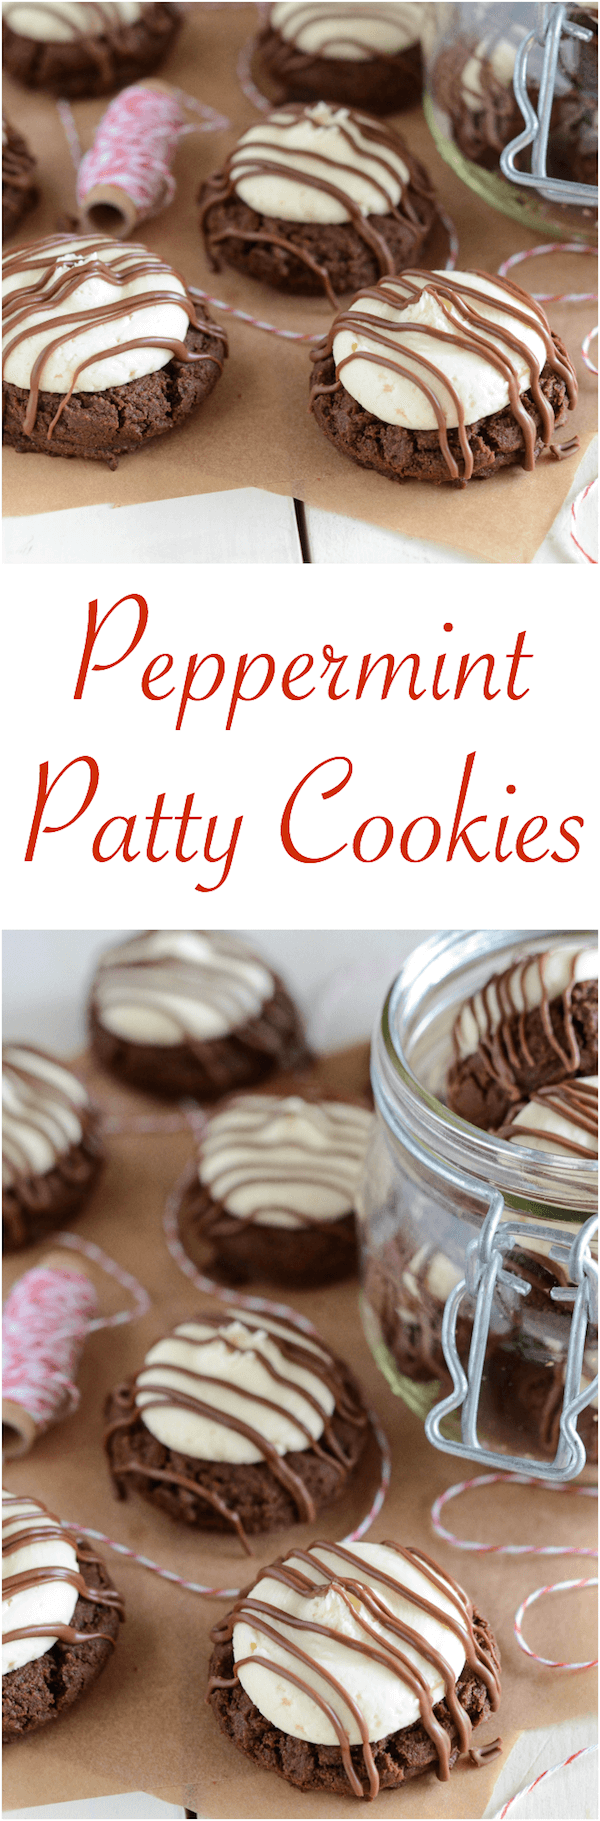 Peppermint Patty Cookies: dark chocolate cookies, creamy peppermint frosting and an extra chocolate drizzle!